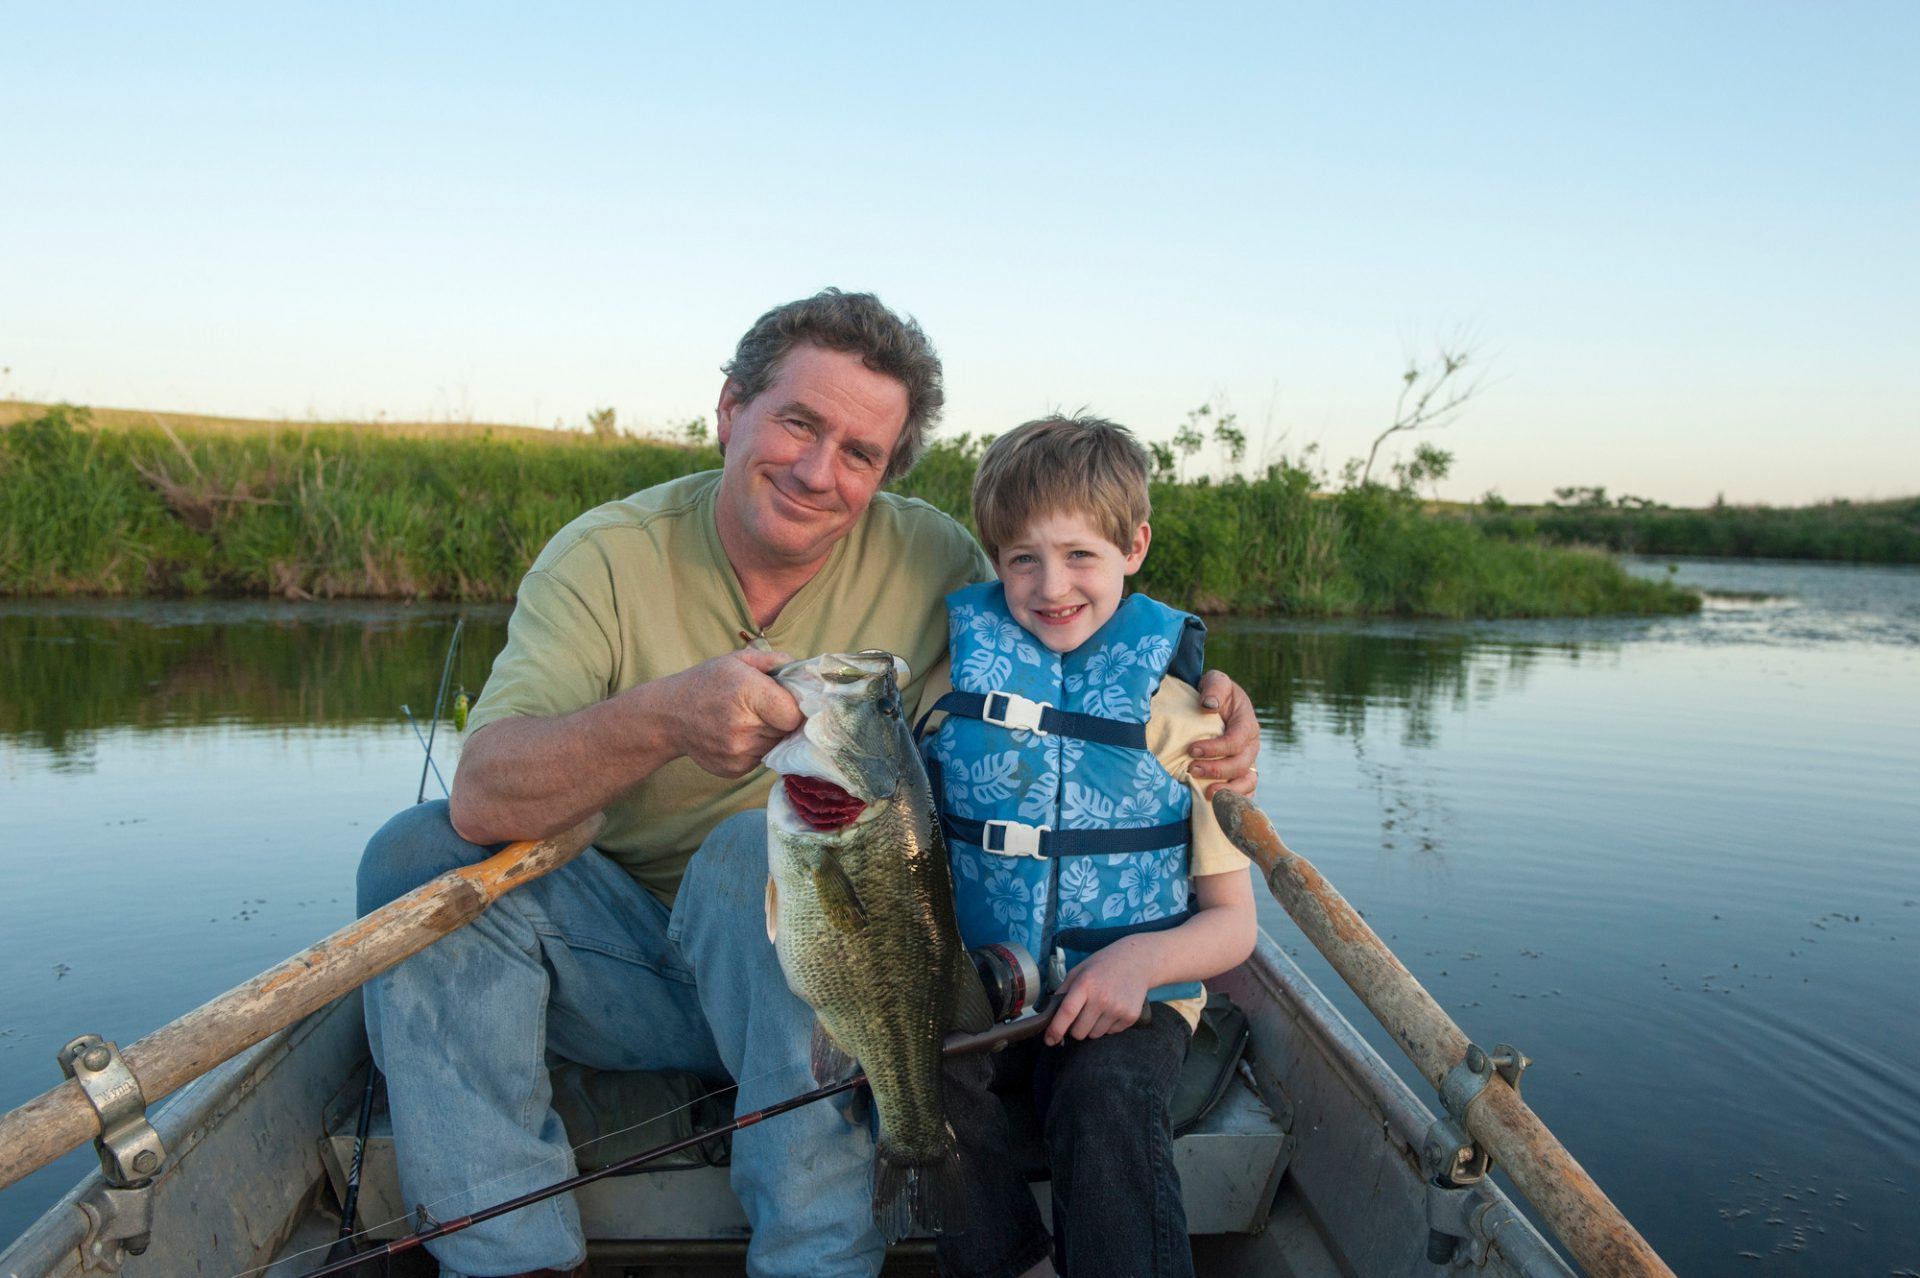 Photo: A father and son catch a fish out of a pond near Valparaiso, Nebraska.